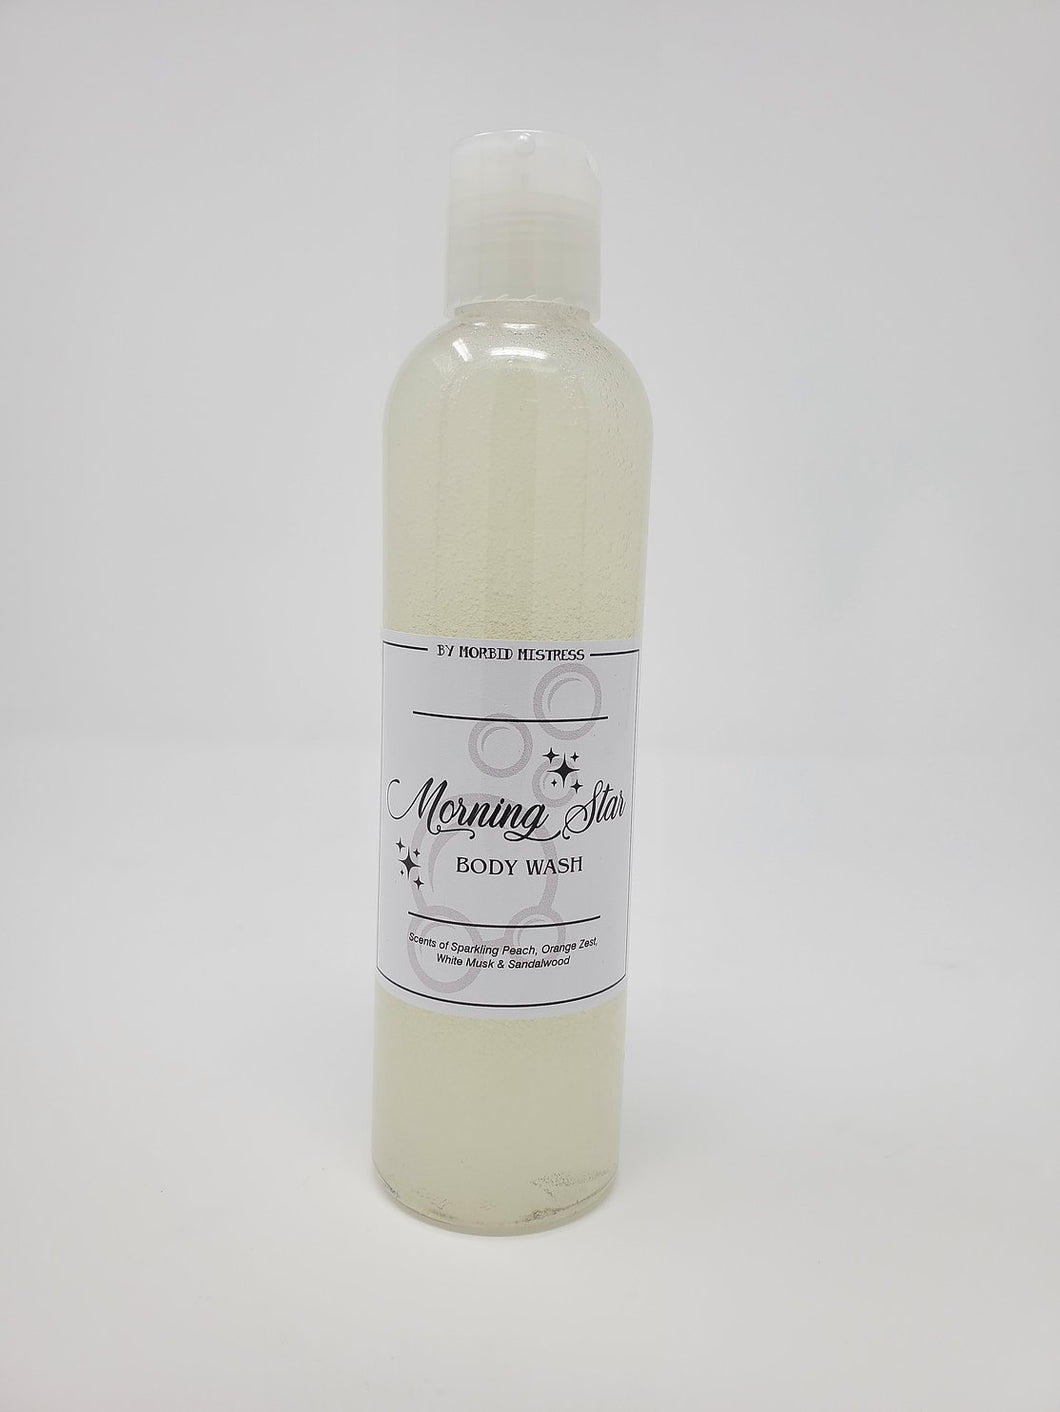 Morning Star Body Wash 8oz